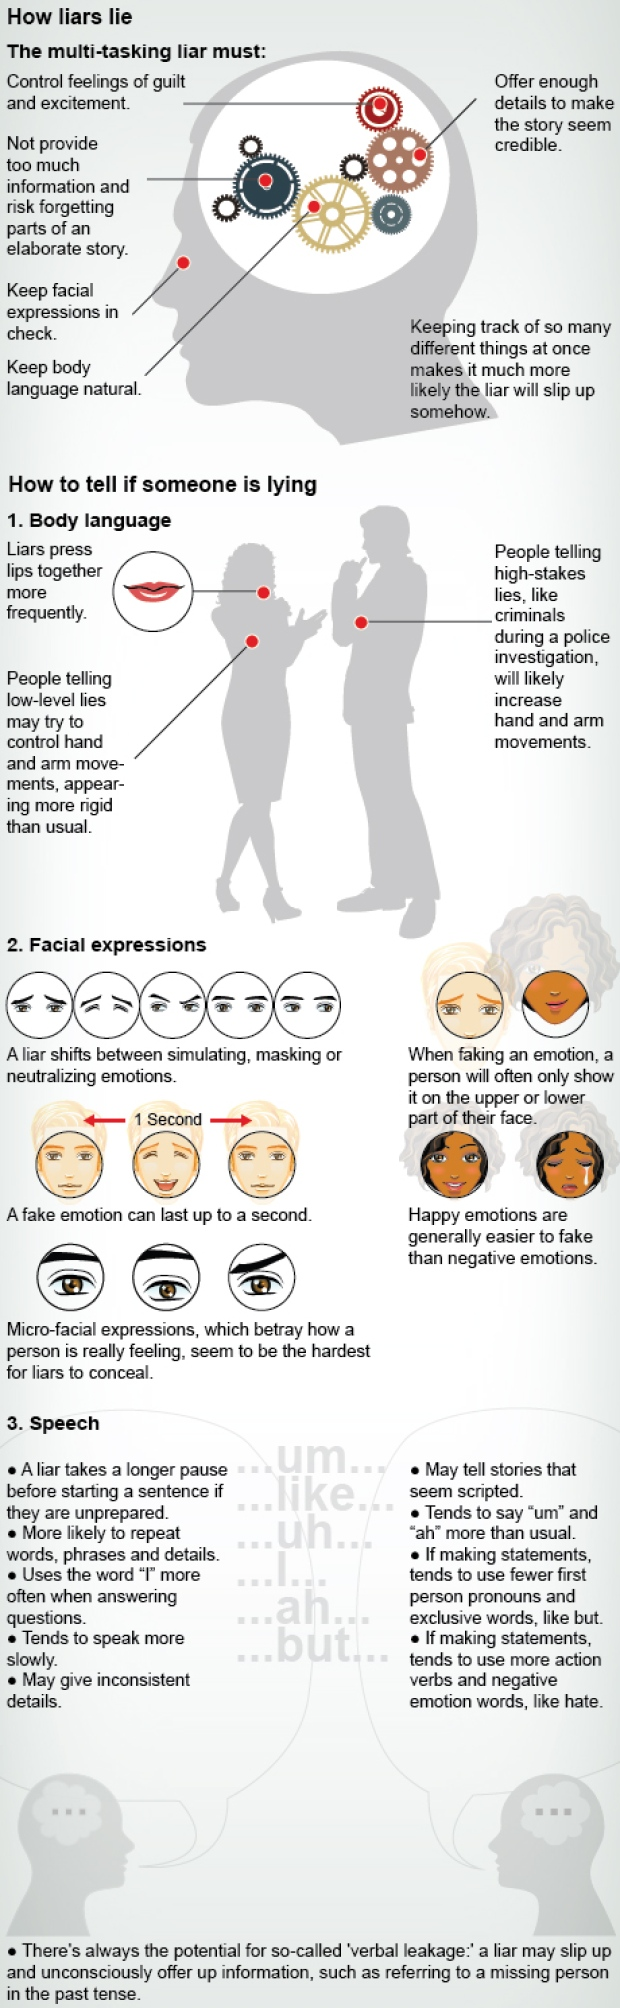 how-to-tell-if-someone-is-lying-infographic